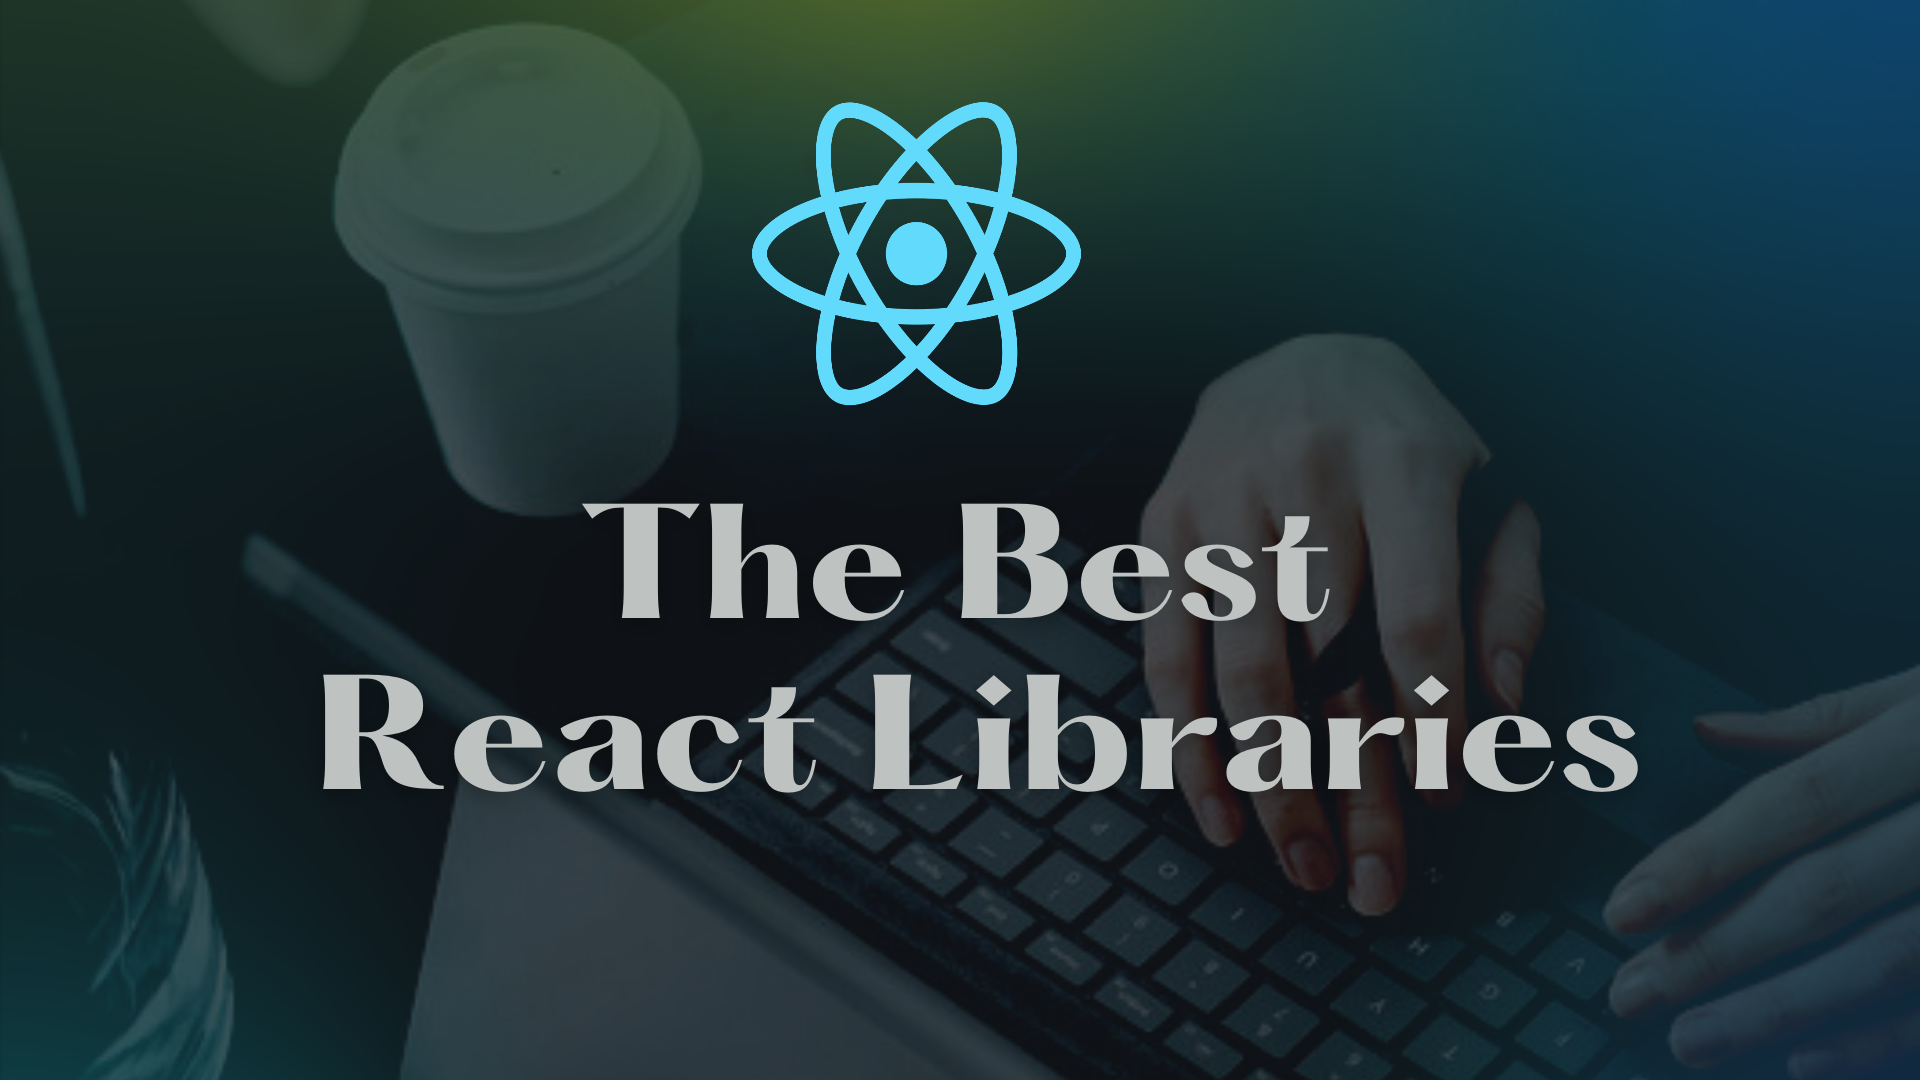 The Best React Libraries